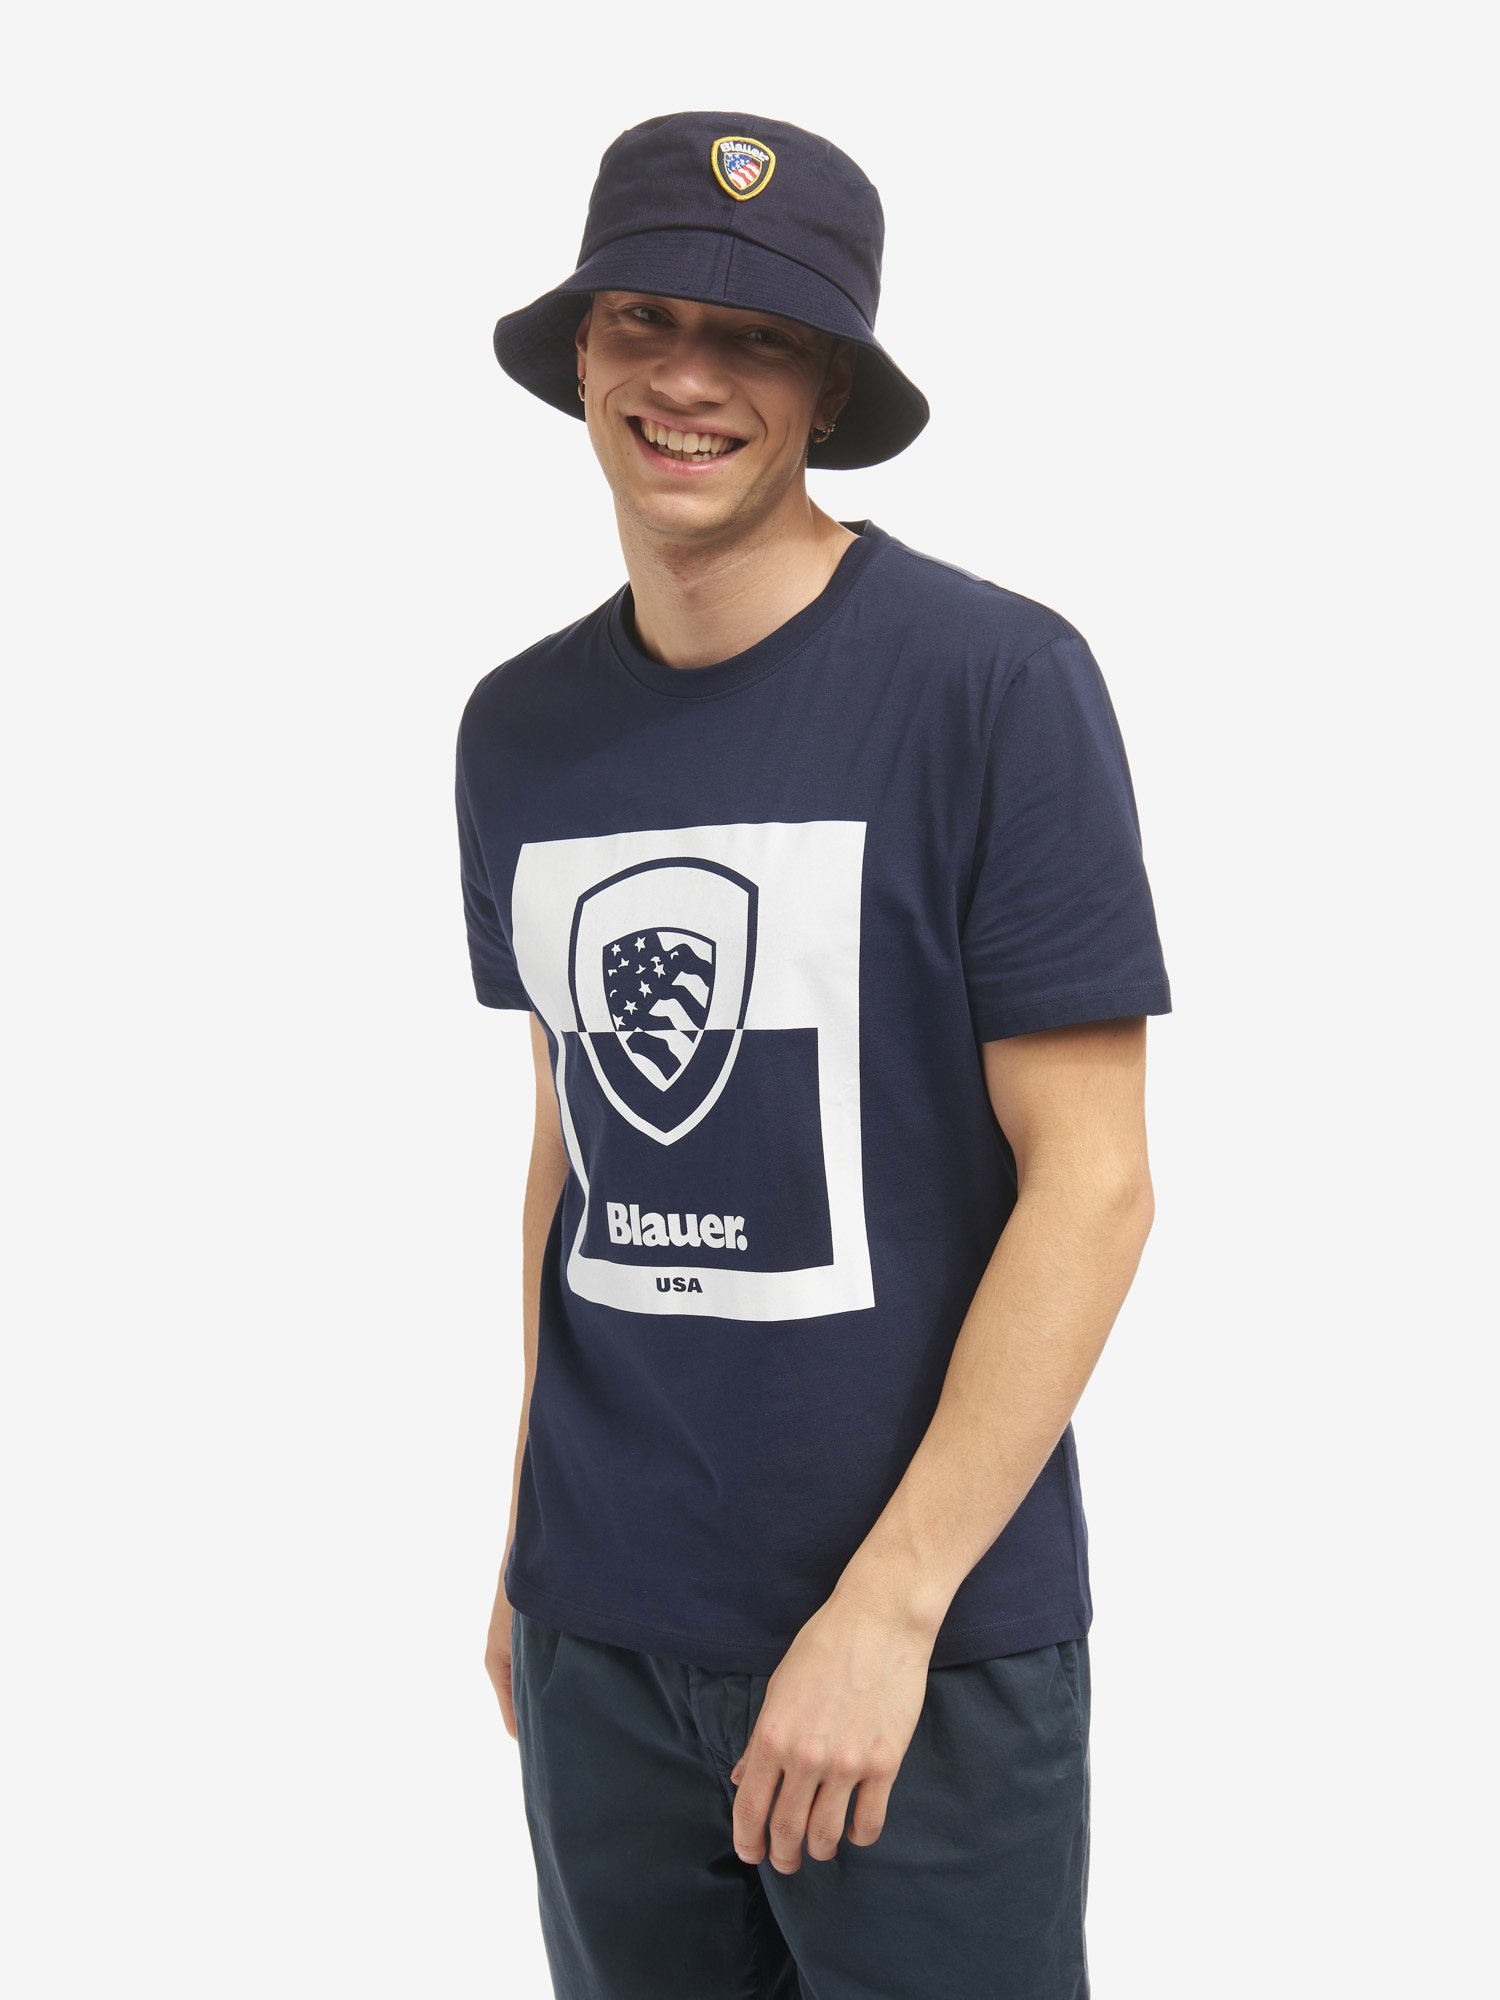 TWO-TONE SHIELD T-SHIRT - Blauer